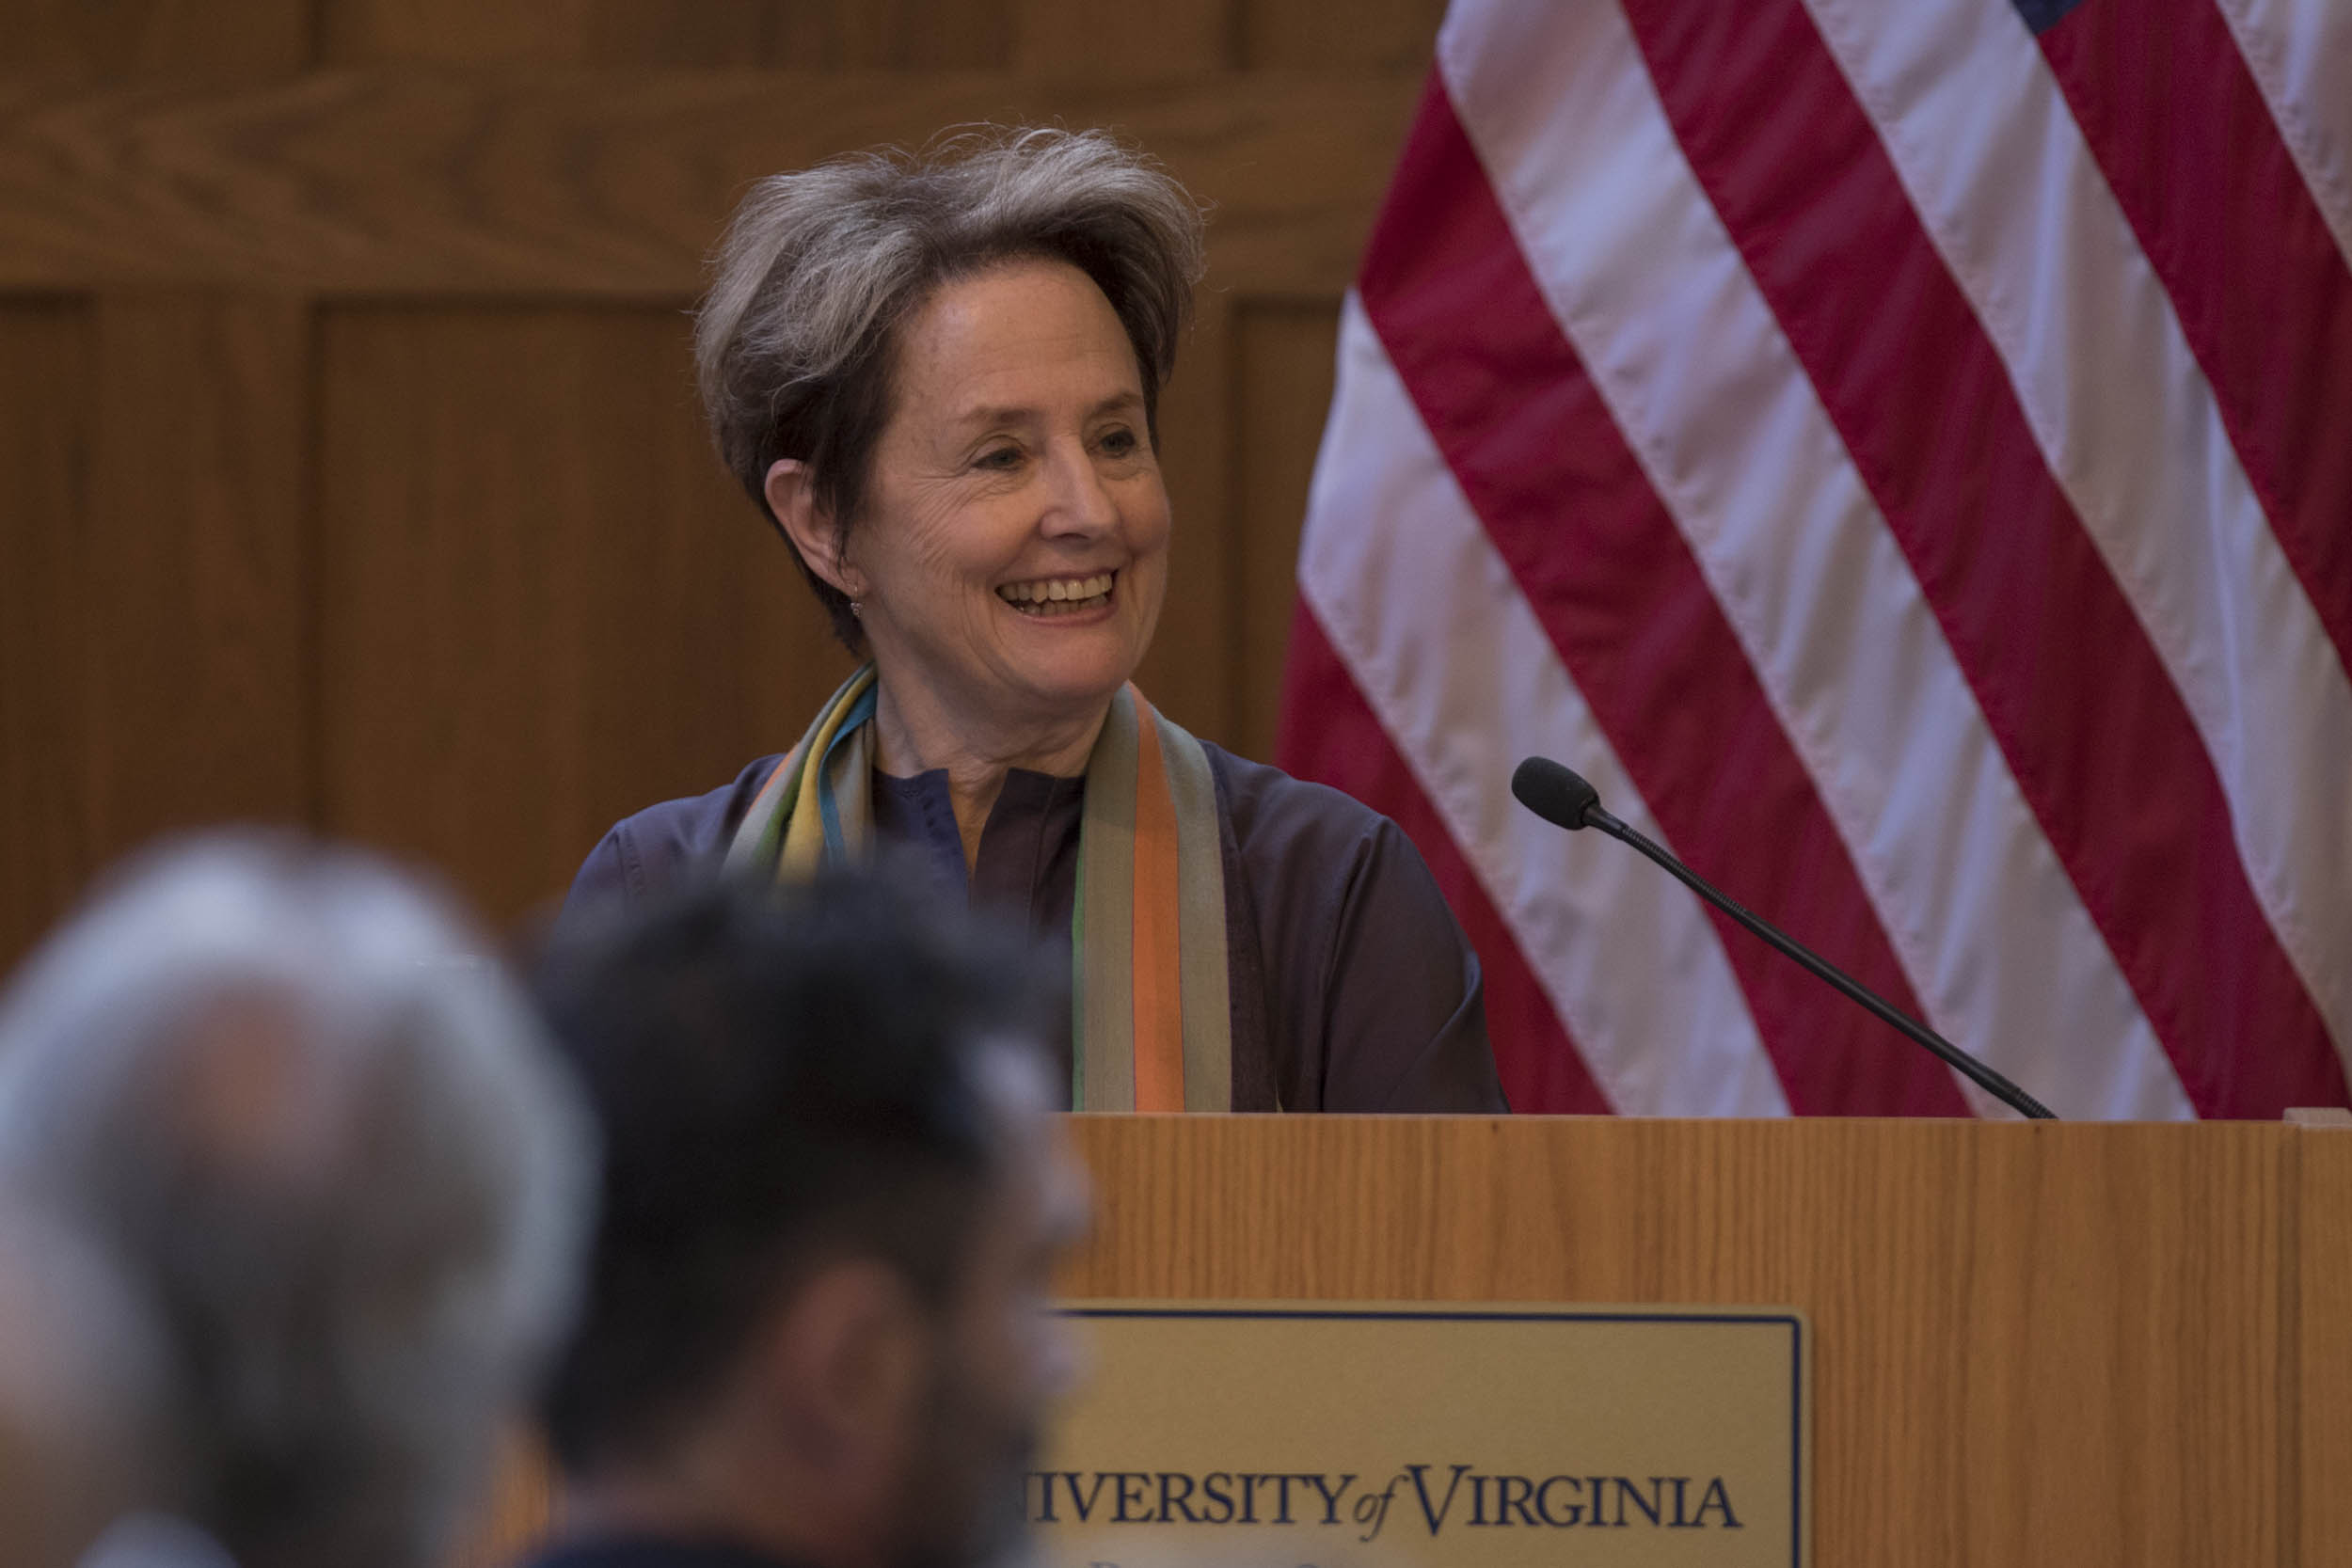 Alice Waters, recipient of the Thomas Jefferson Medal in Citizen Leadership, spoke Thursday at the Batten School. (Photo by Sanjay Suchak, University Communications)